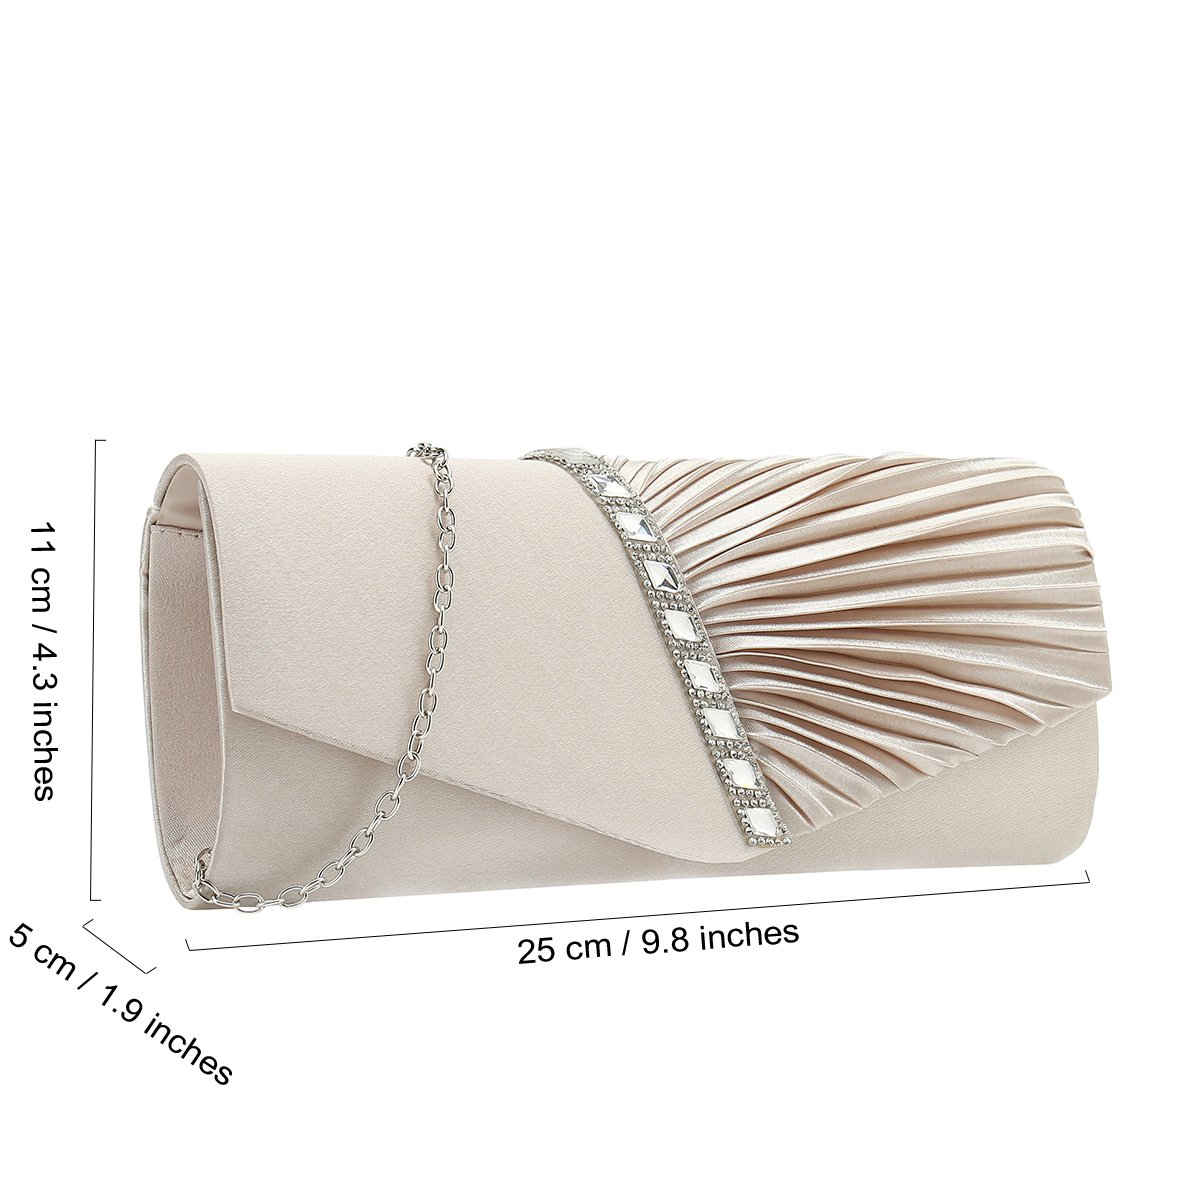 Charming Tailor Evening Handbag Crystal Embellished and Pleated Satin Clutch (Champagne) by Charming Tailor (Image #3)